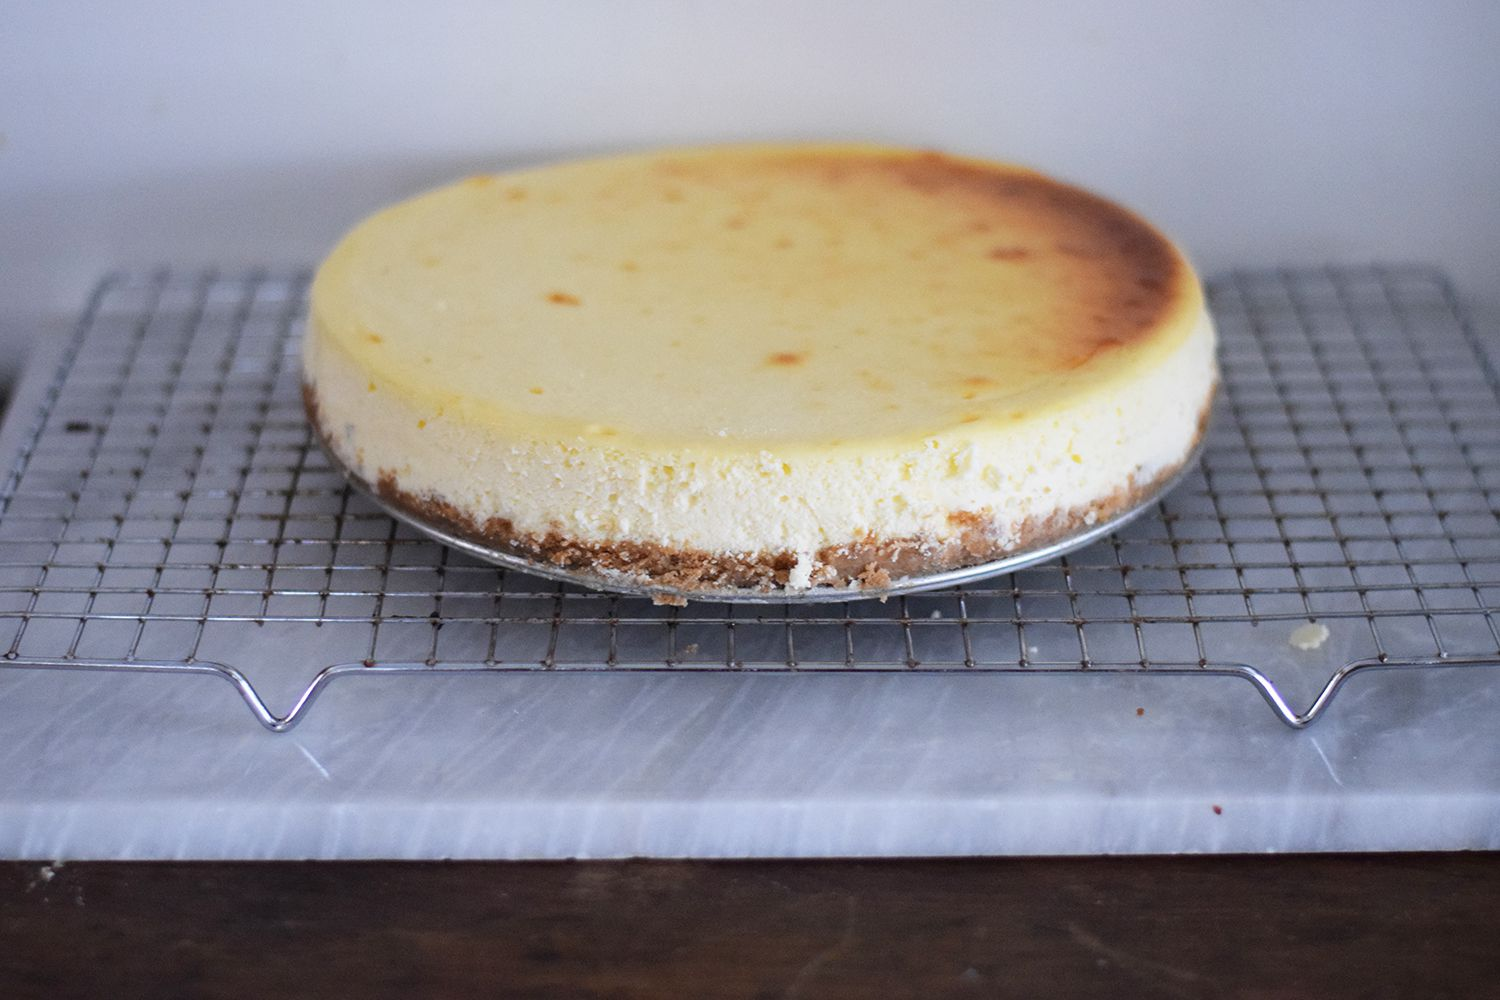 Let the Cheesecake Cool Gradually on a Wire Rack